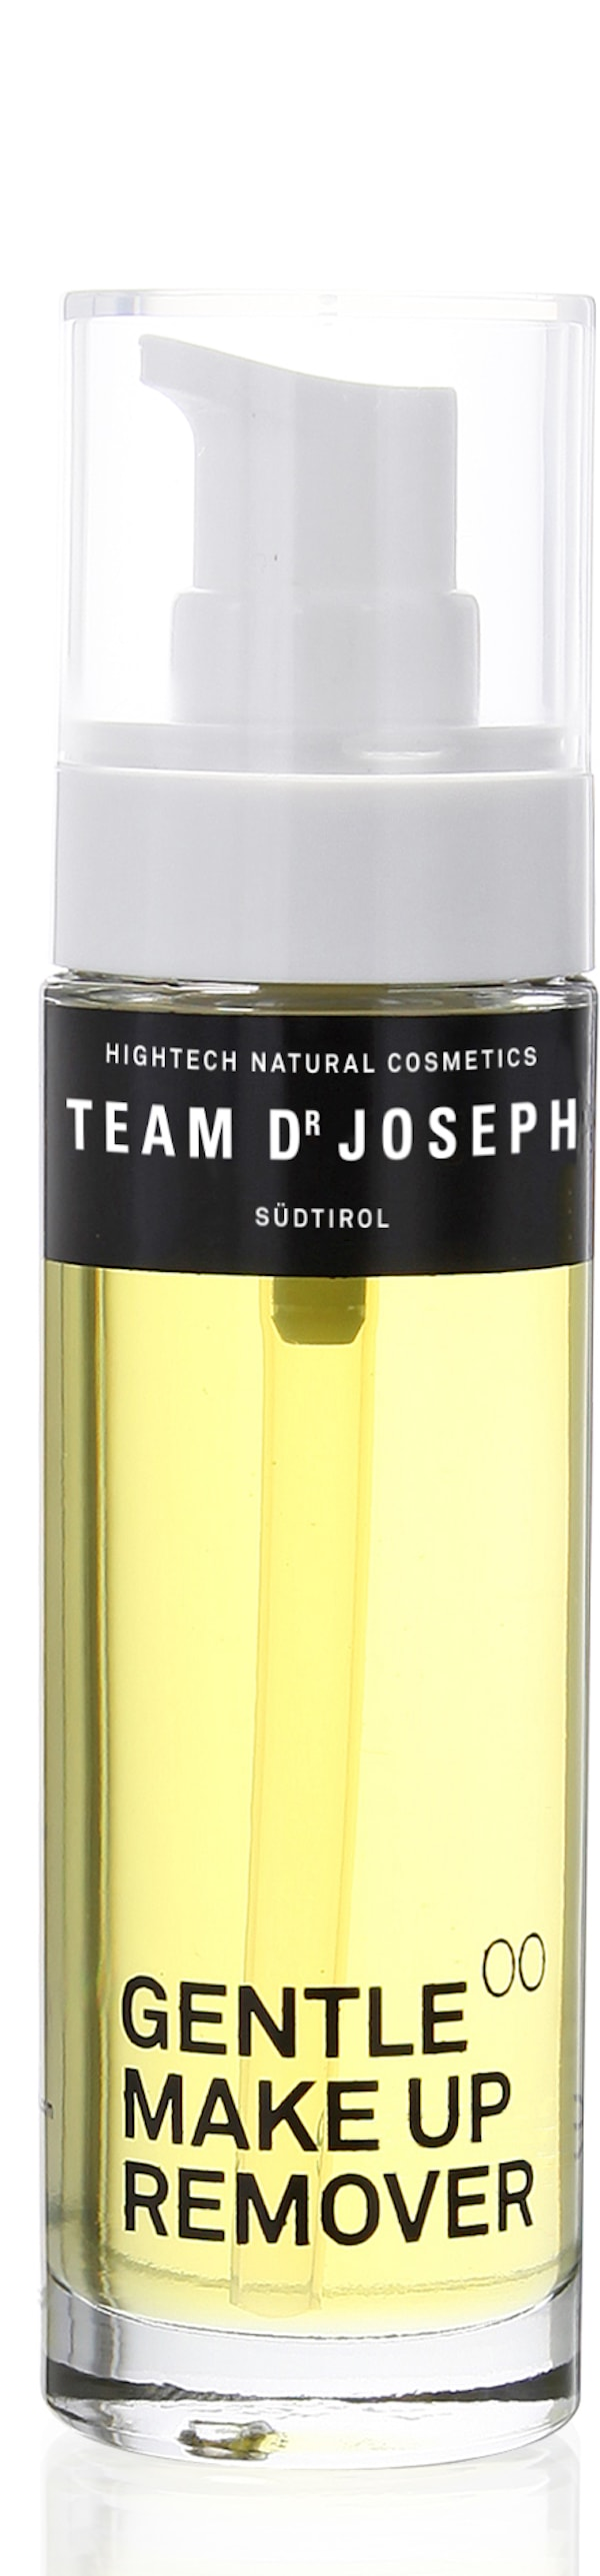 Gentle Make Up Remover von Team Dr. Joseph